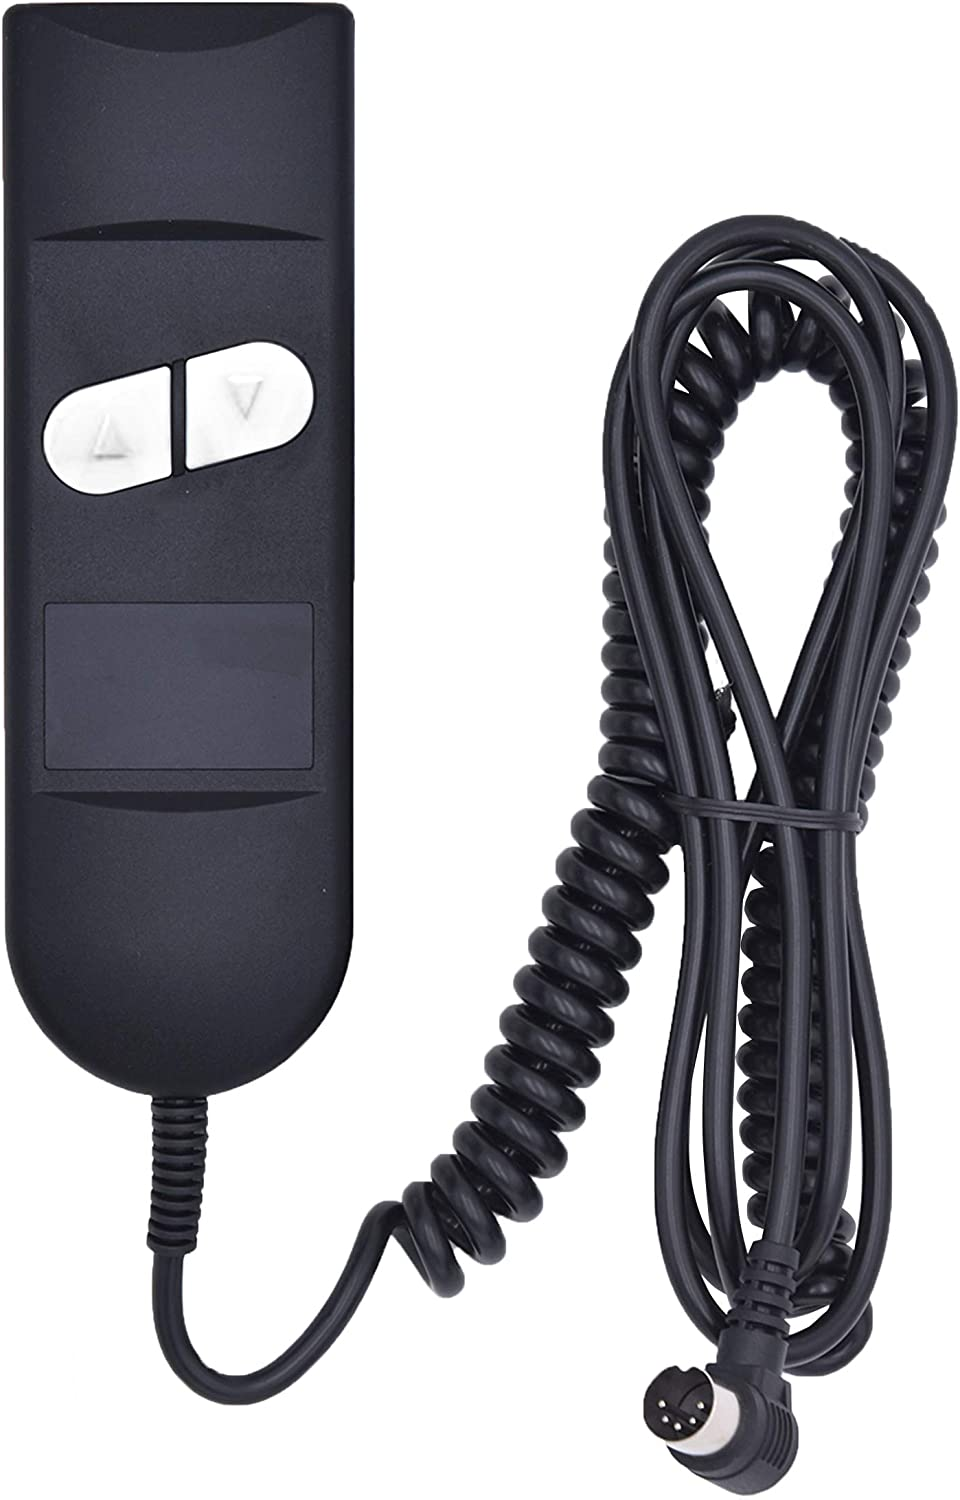 Fromann Remote Hand Control with 2 Button 5 pin Connection for Okin Lift Chair Power Recliner